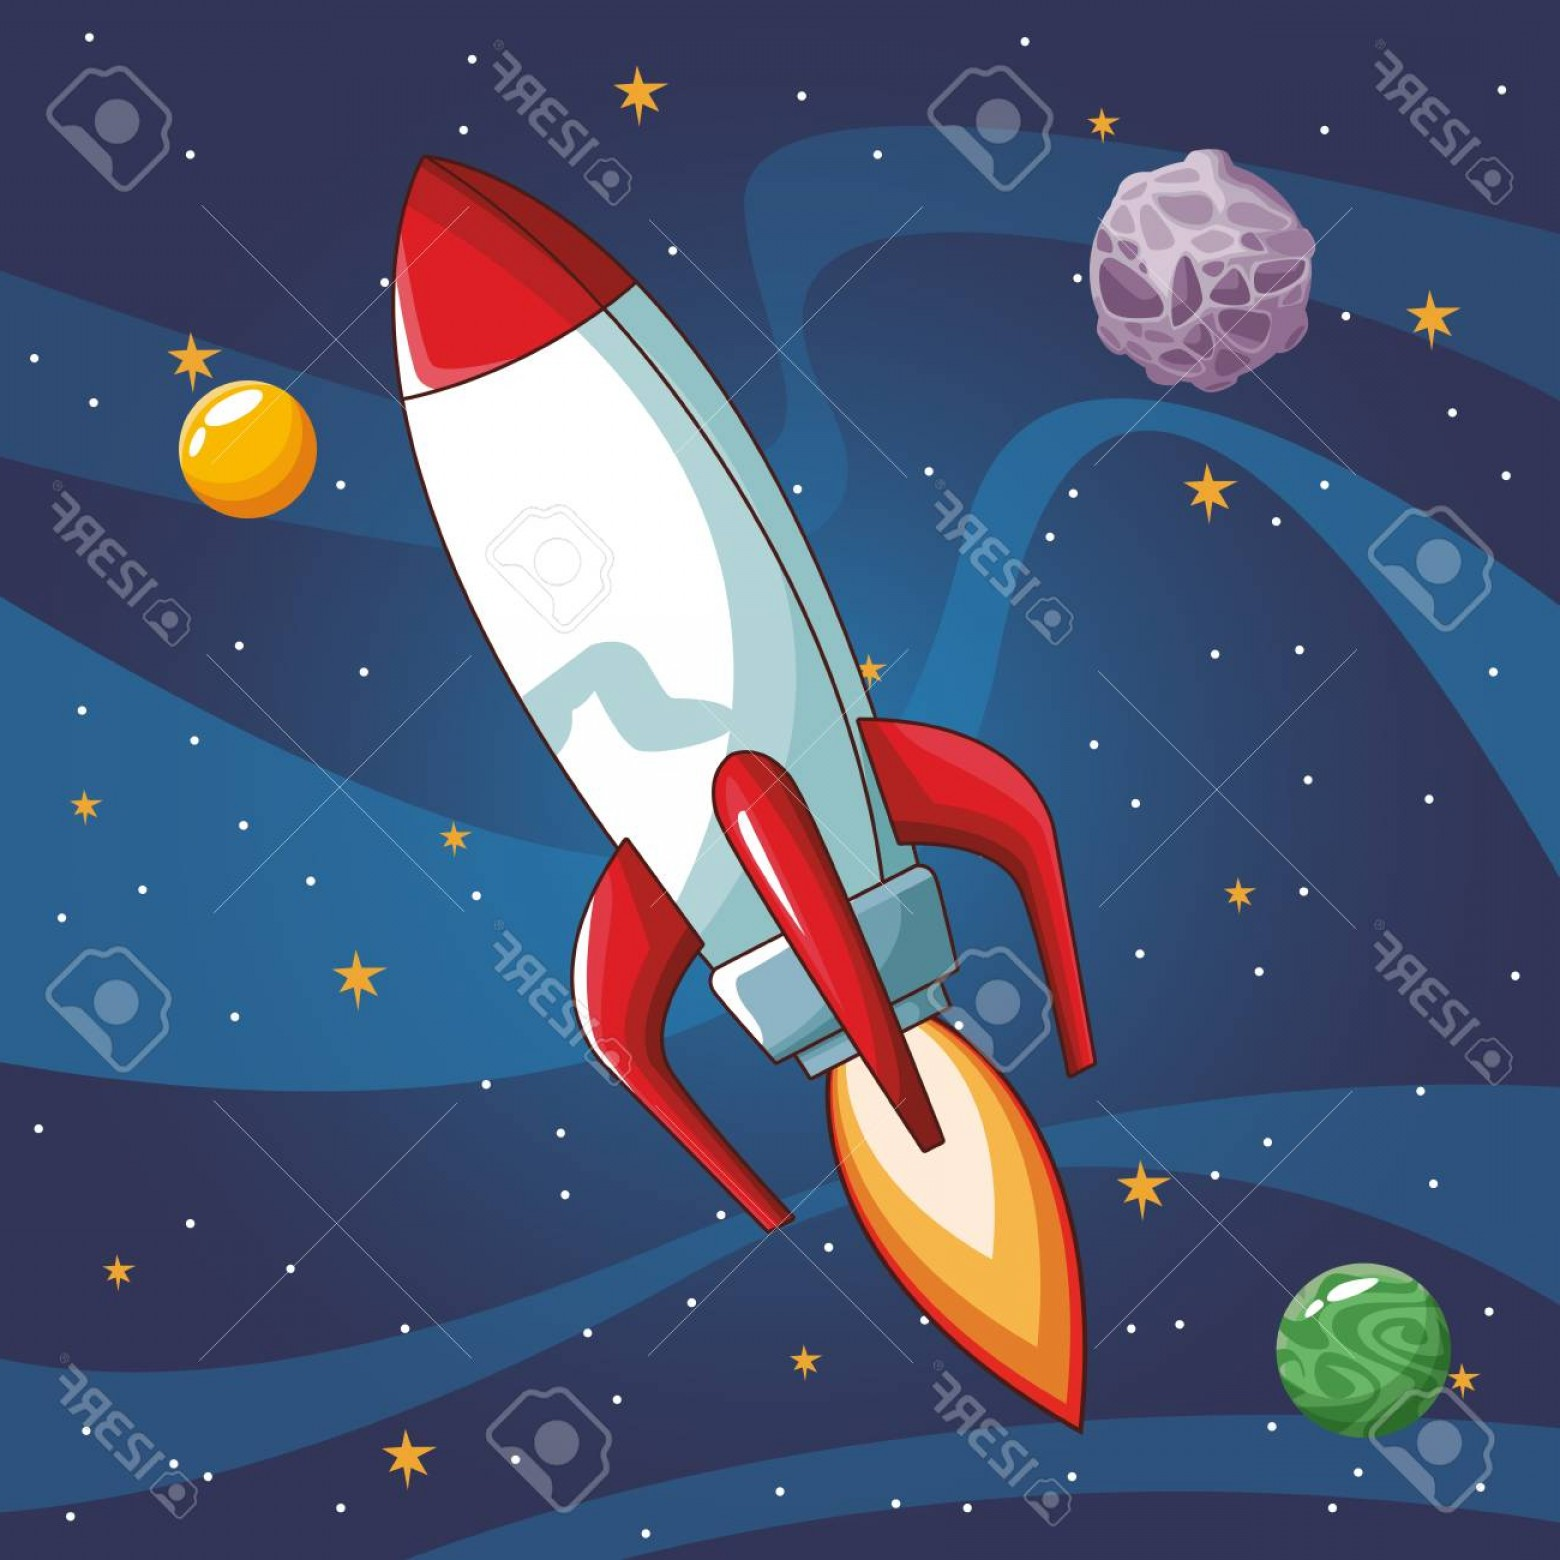 Space Vector Graphics: Photostock Vector Spaceship Flying In The Space Vector Illustration Graphic Design